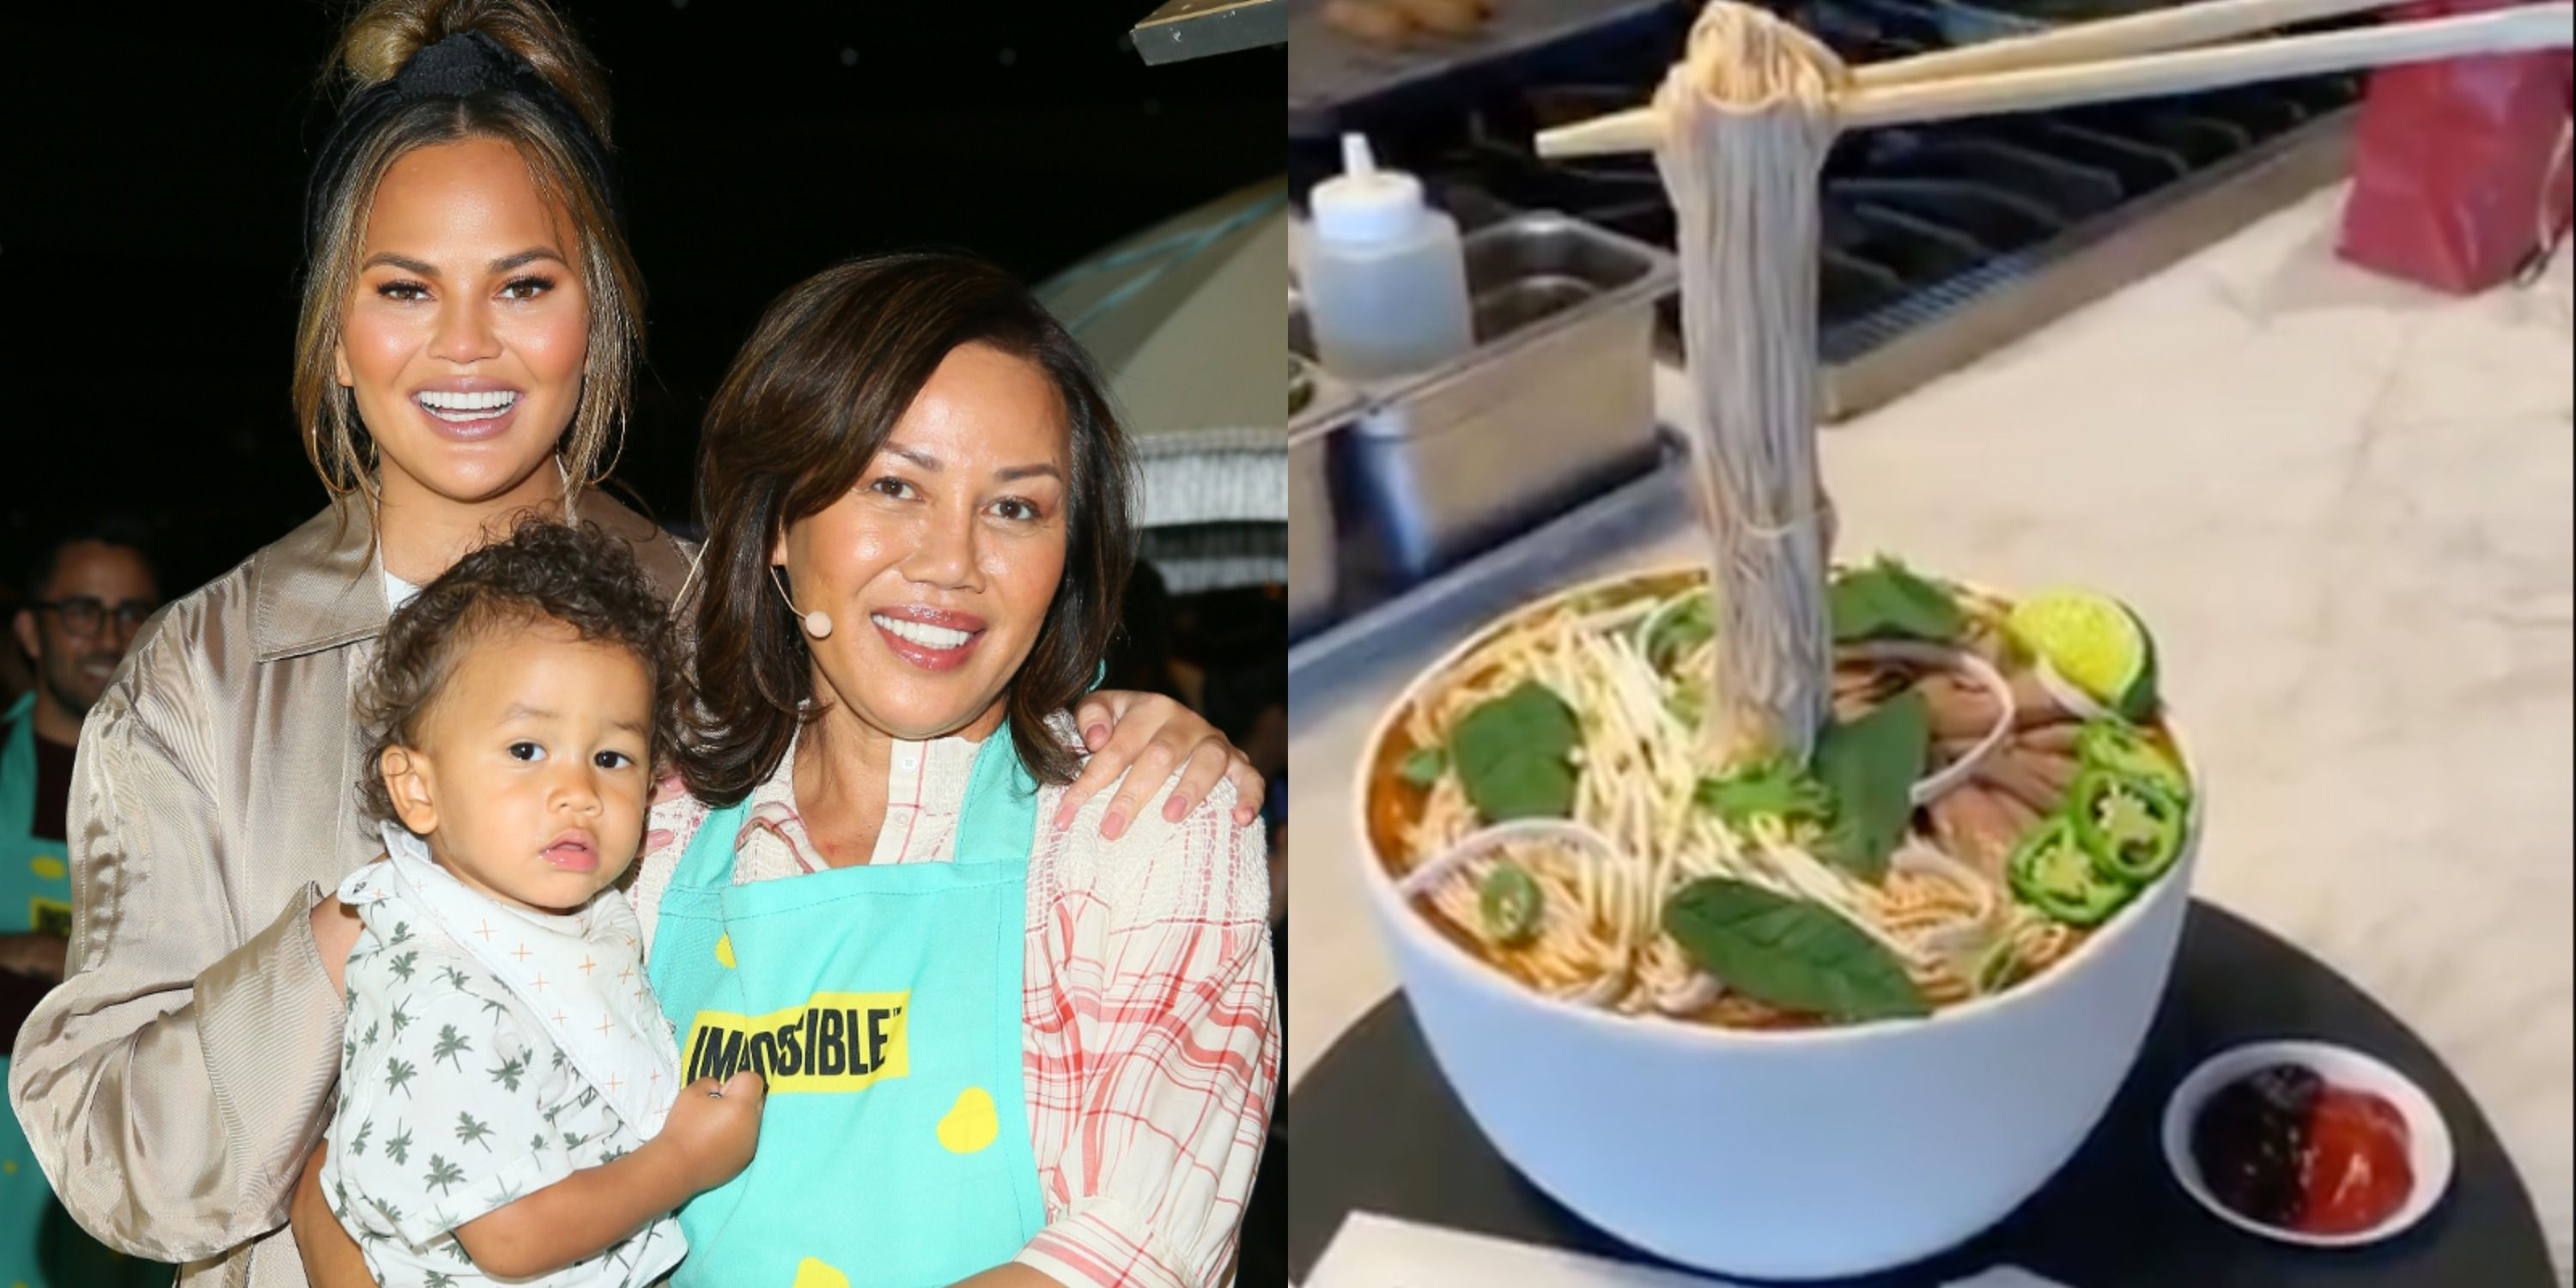 Terrific Chrissy Teigen Got Her Mom A Birthday Cake Made To Look Like Pho Birthday Cards Printable Giouspongecafe Filternl